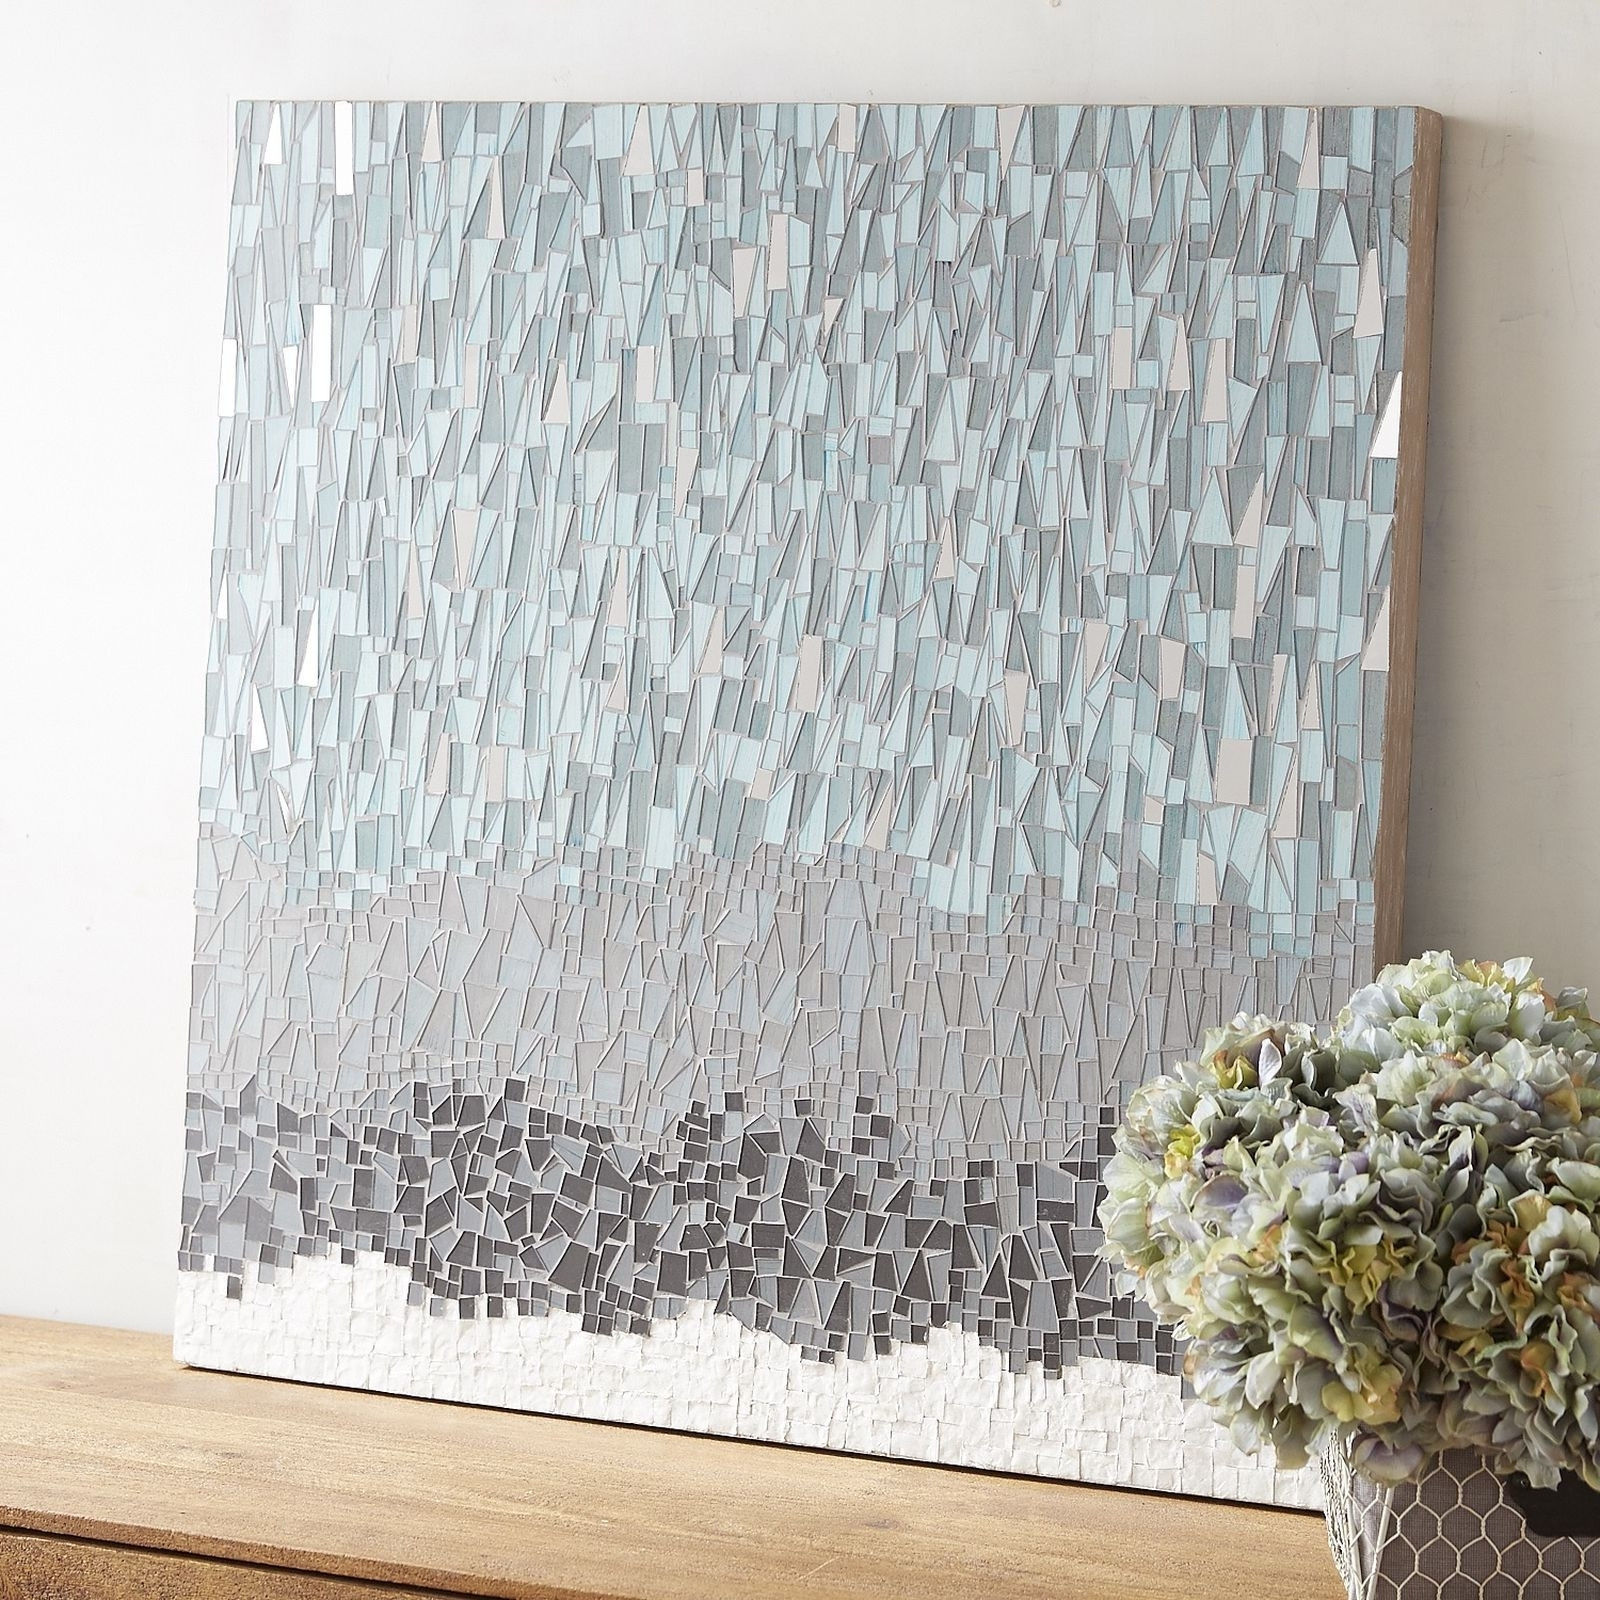 Recent Mosaic Wall Art Design Pier 1 Wall Decor Scheme Of Pier One Imports Intended For Pier 1 Wall Art (View 5 of 15)